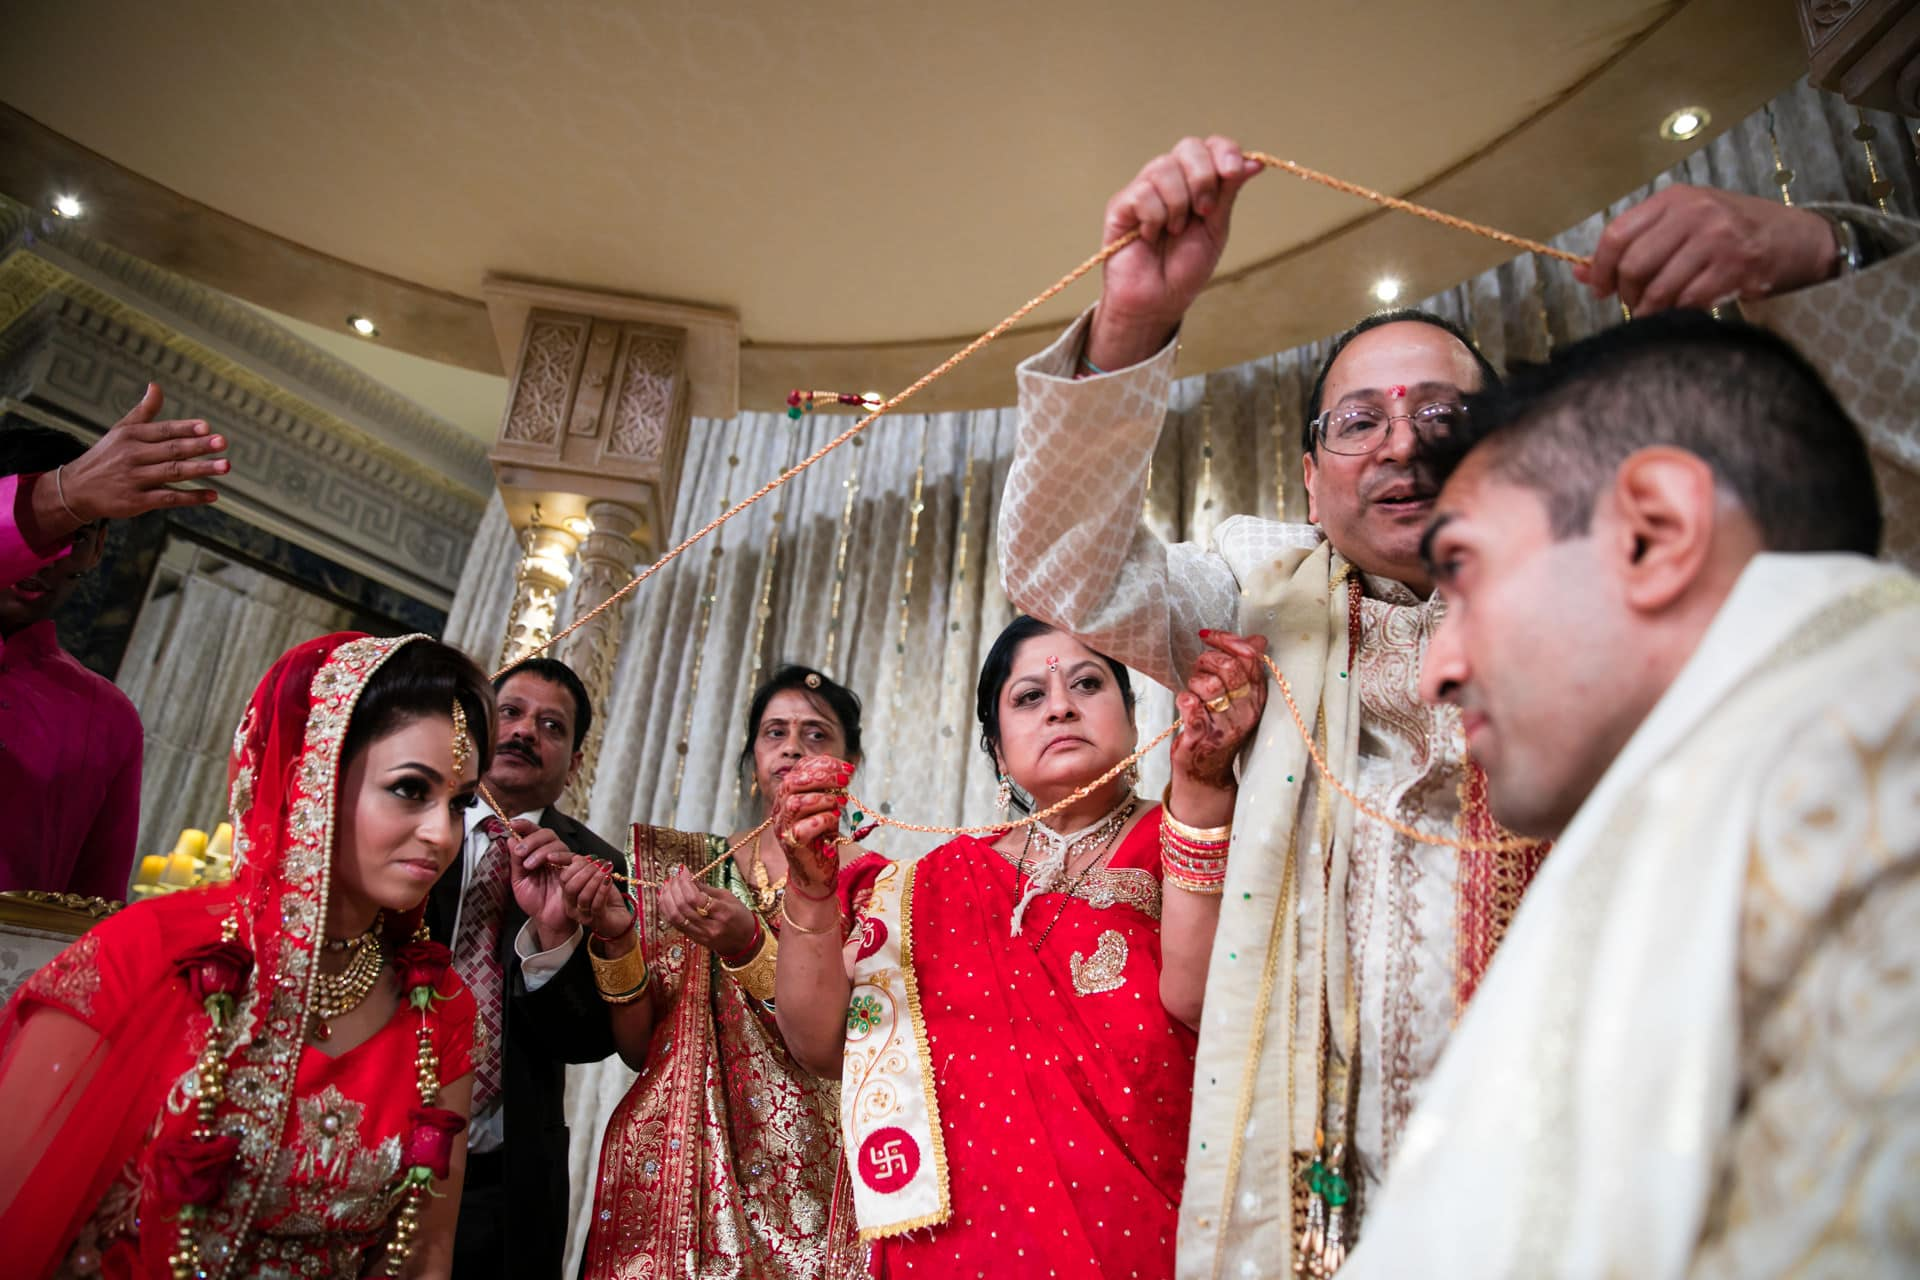 Gujarati wedding ceremony at the Dorchester hotel